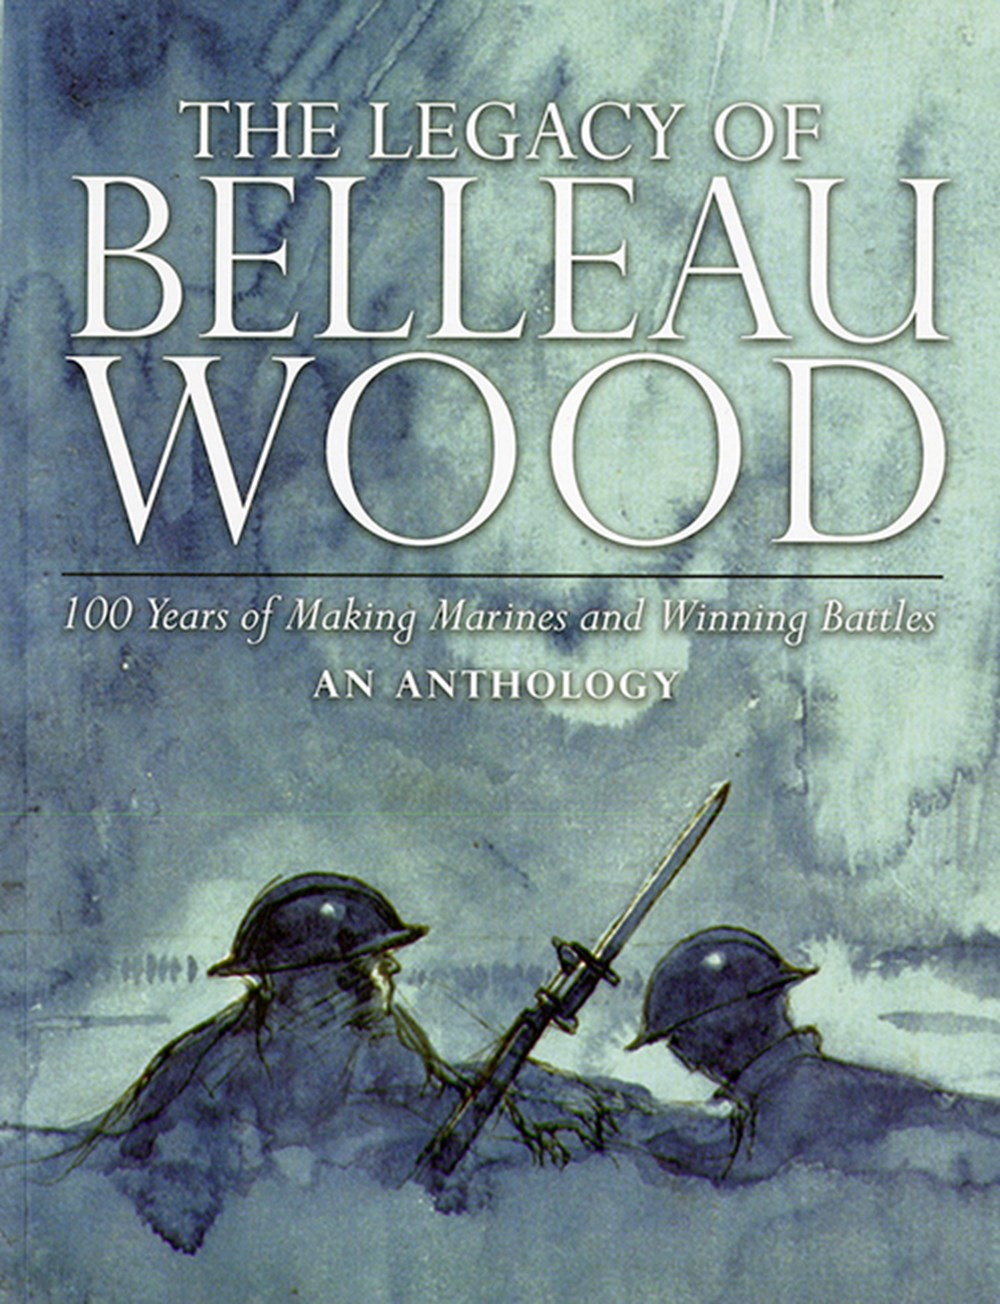 Legacy of Belleau Wood 100 Years of Making Marines and Winning Battles, an Anthology: 100 Years of M